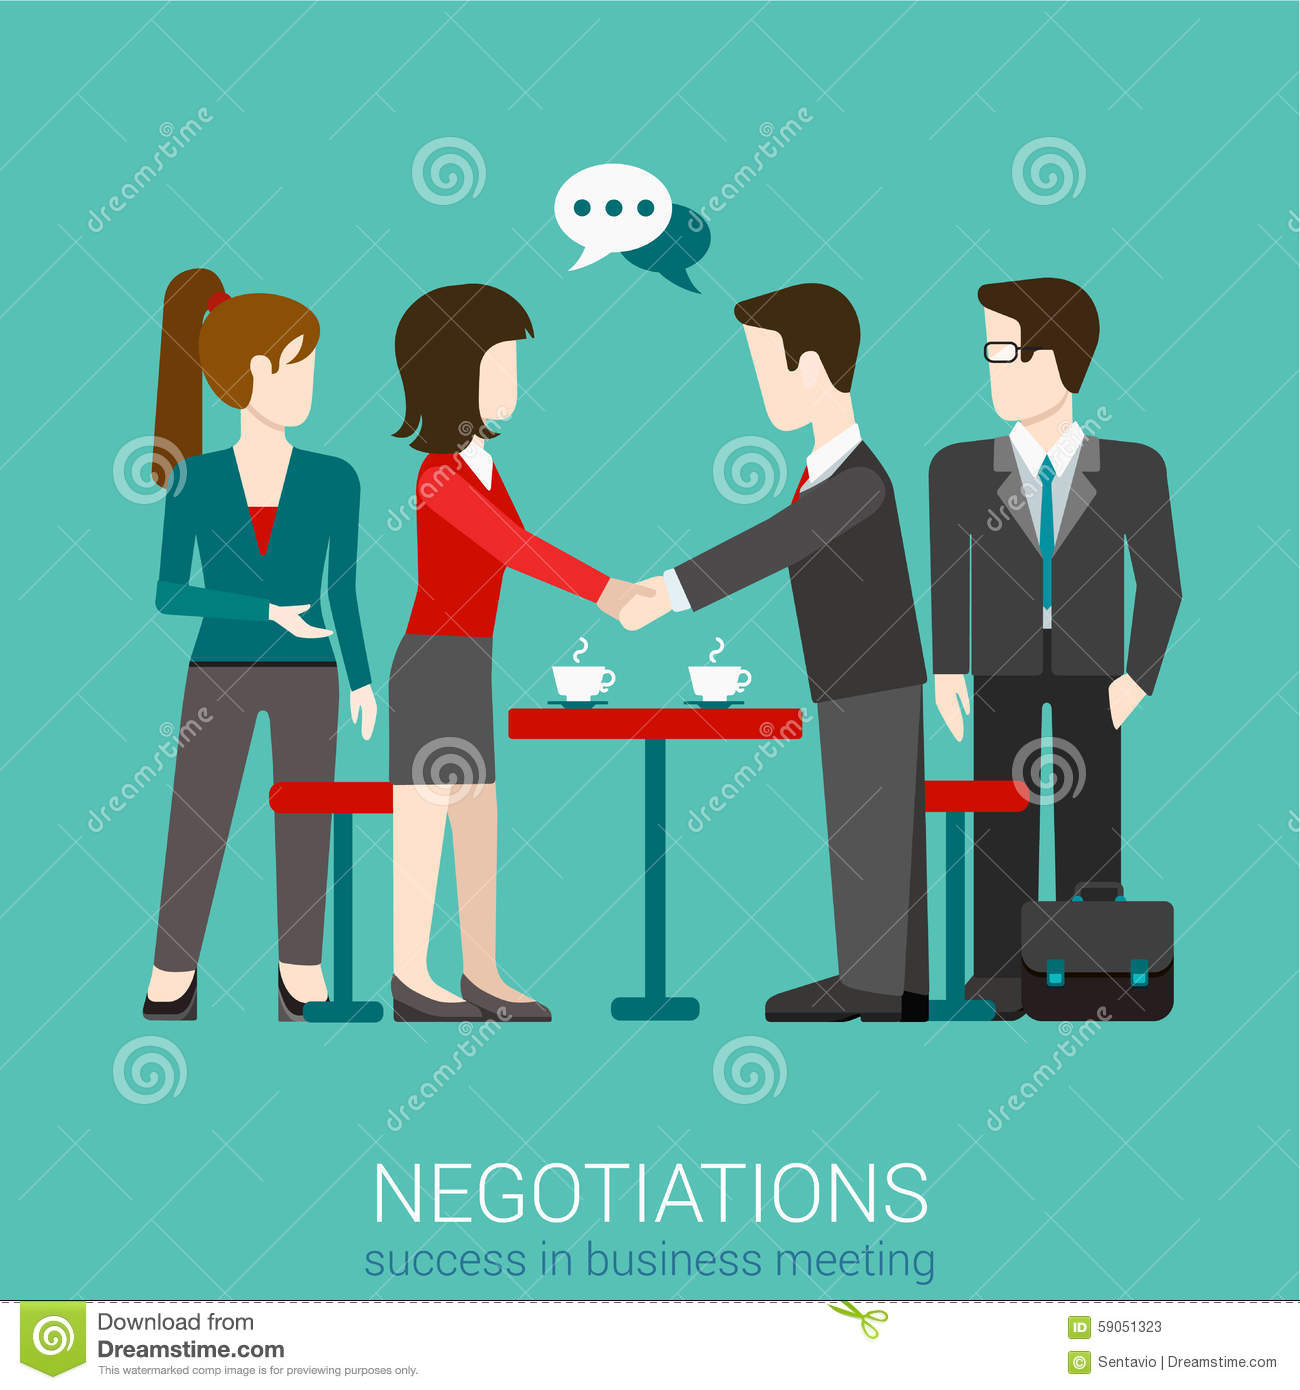 how to succeed in business negotiation Assess your staff members' negotiation skills allow only the suitably skilled to participate in negotiations on the company's behalf it's just a matter of optimum utilization of resources simple though it is, you may be astonished at the results 5 implement the win-win concept in your business – and be a winner yourself.